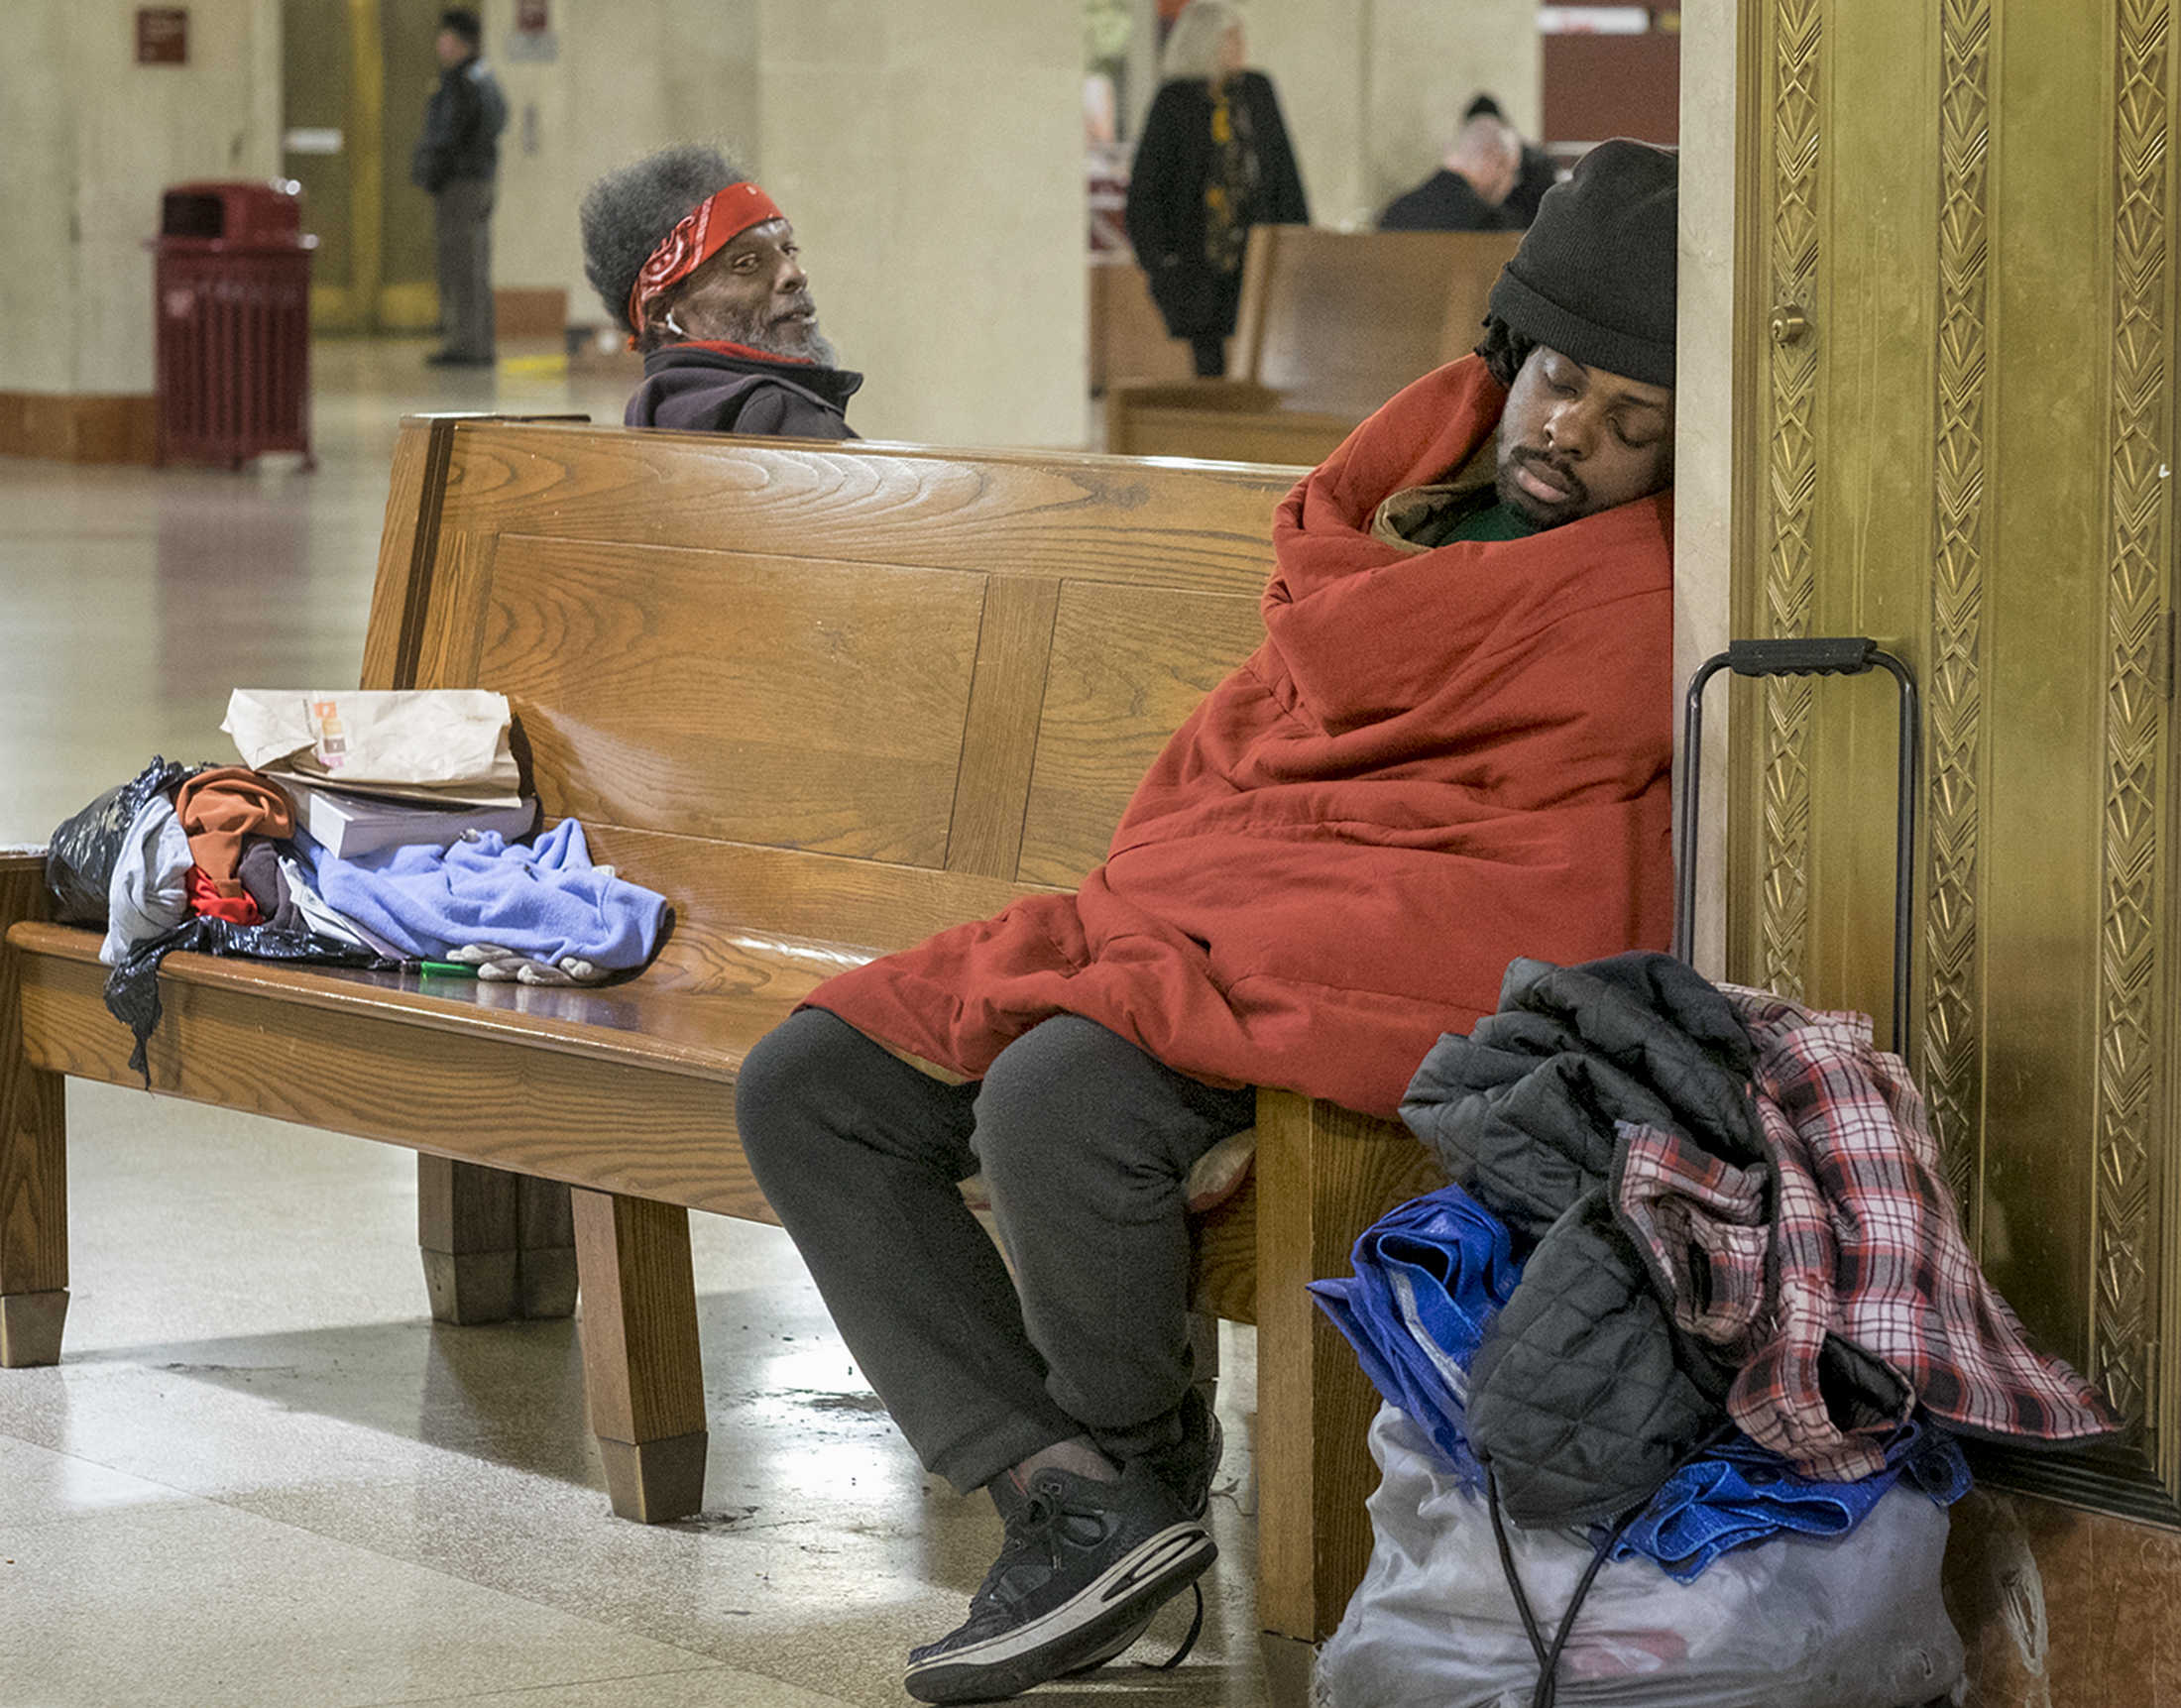 At Suburban Station, an unidentified homeless man sleeps on a bench.The Philly Shrug adds to the invisibility of homelessness.<br />